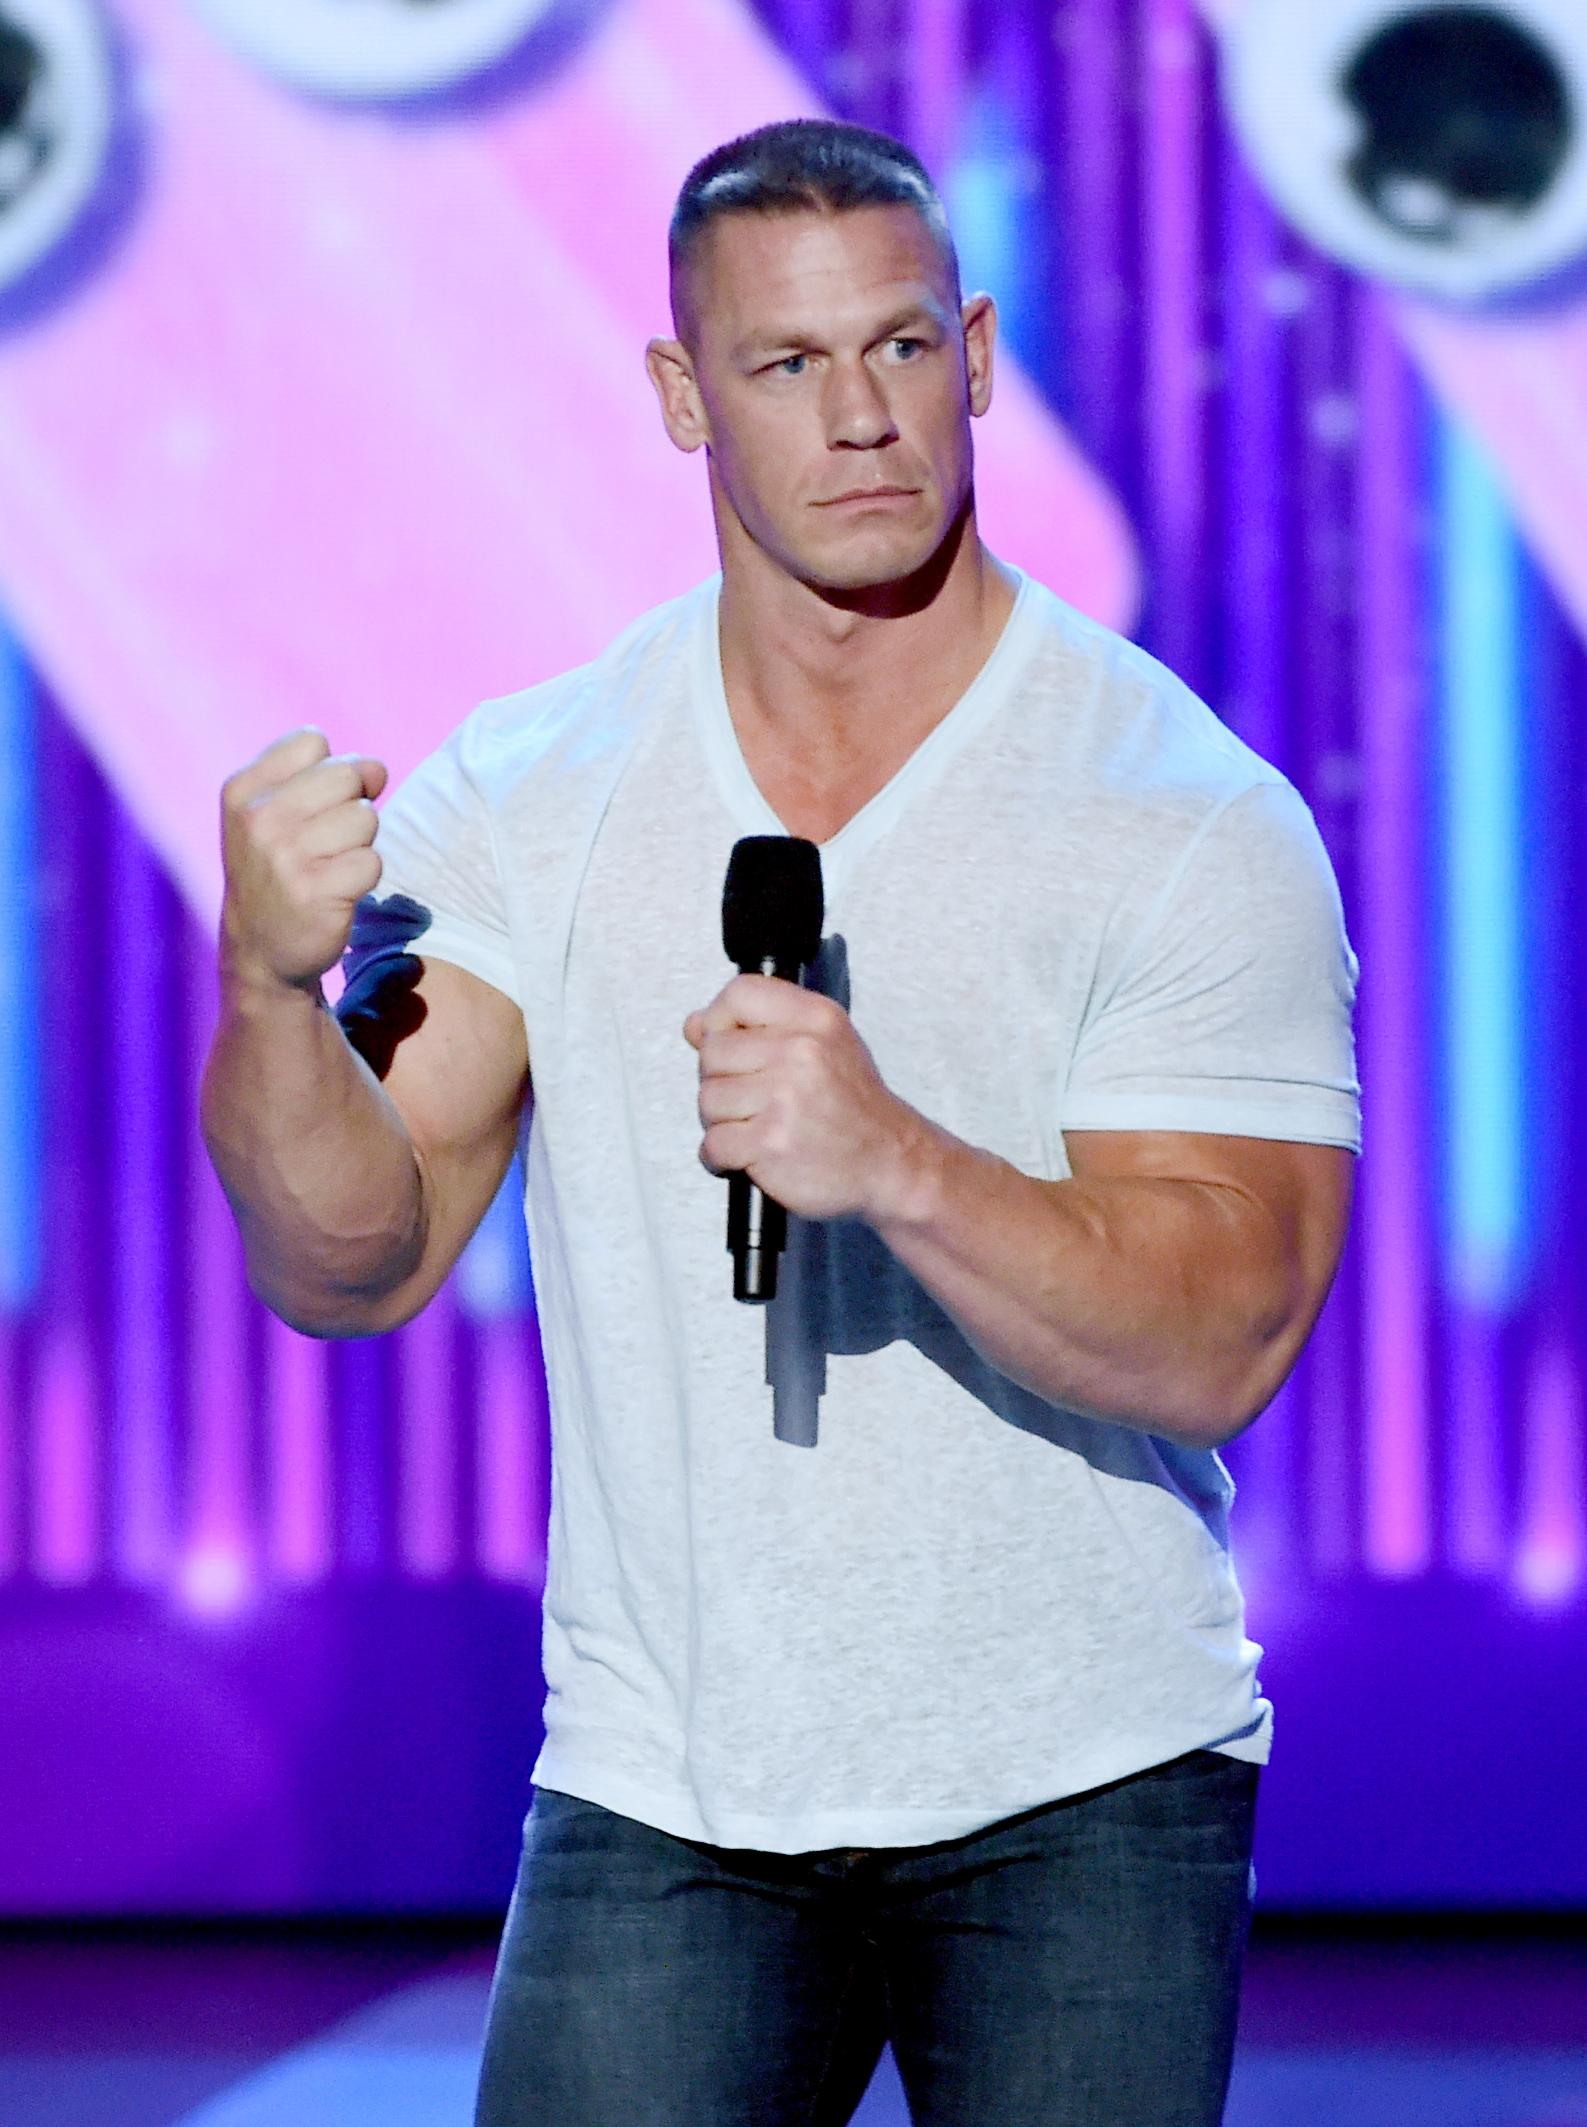 LOS ANGELES, CA - MARCH 11:  Host John Cena speaks onstage at Nickelodeon's 2017 Kids' Choice Awards at USC Galen Center on March 11, 2017 in Los Angeles, California.  (Photo by Kevin Winter/Getty Images - Issued to Media by Nickelodeon)